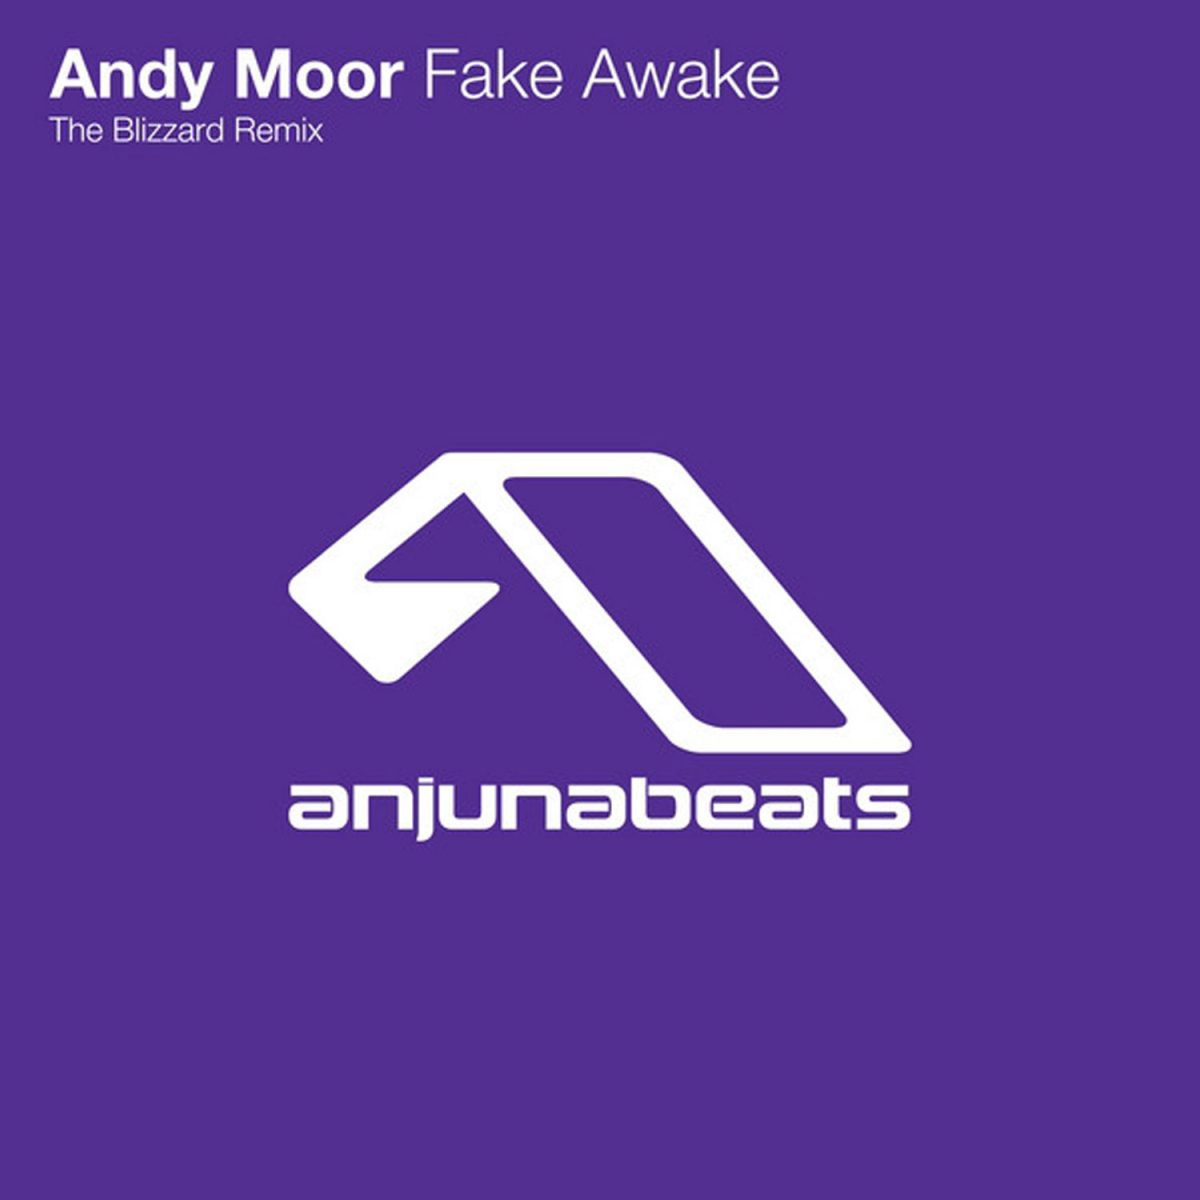 Andy Moor - Fake Awake (The Blizzard Remix) on Anjunabats